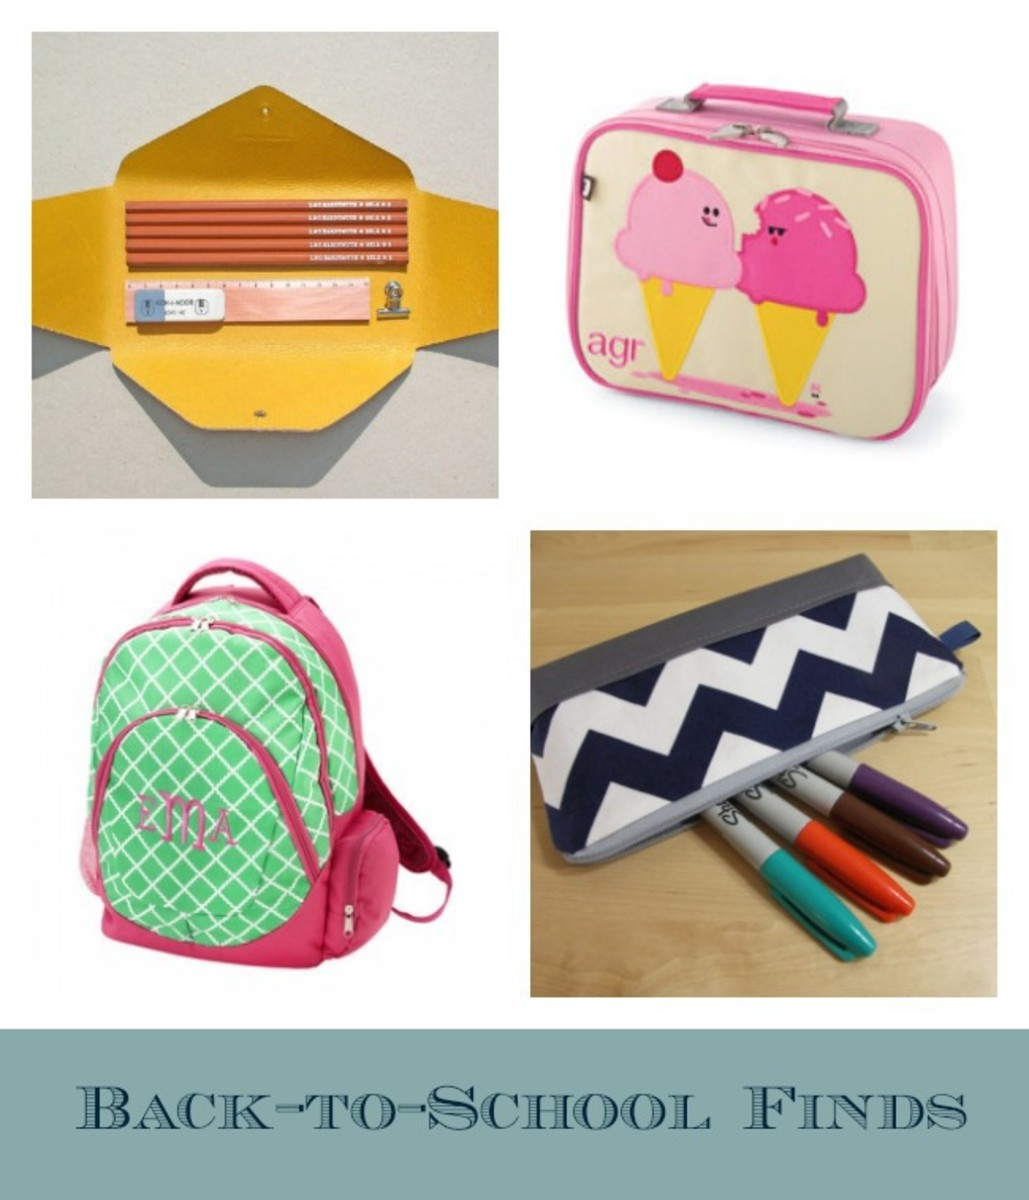 back to school, back to school finds